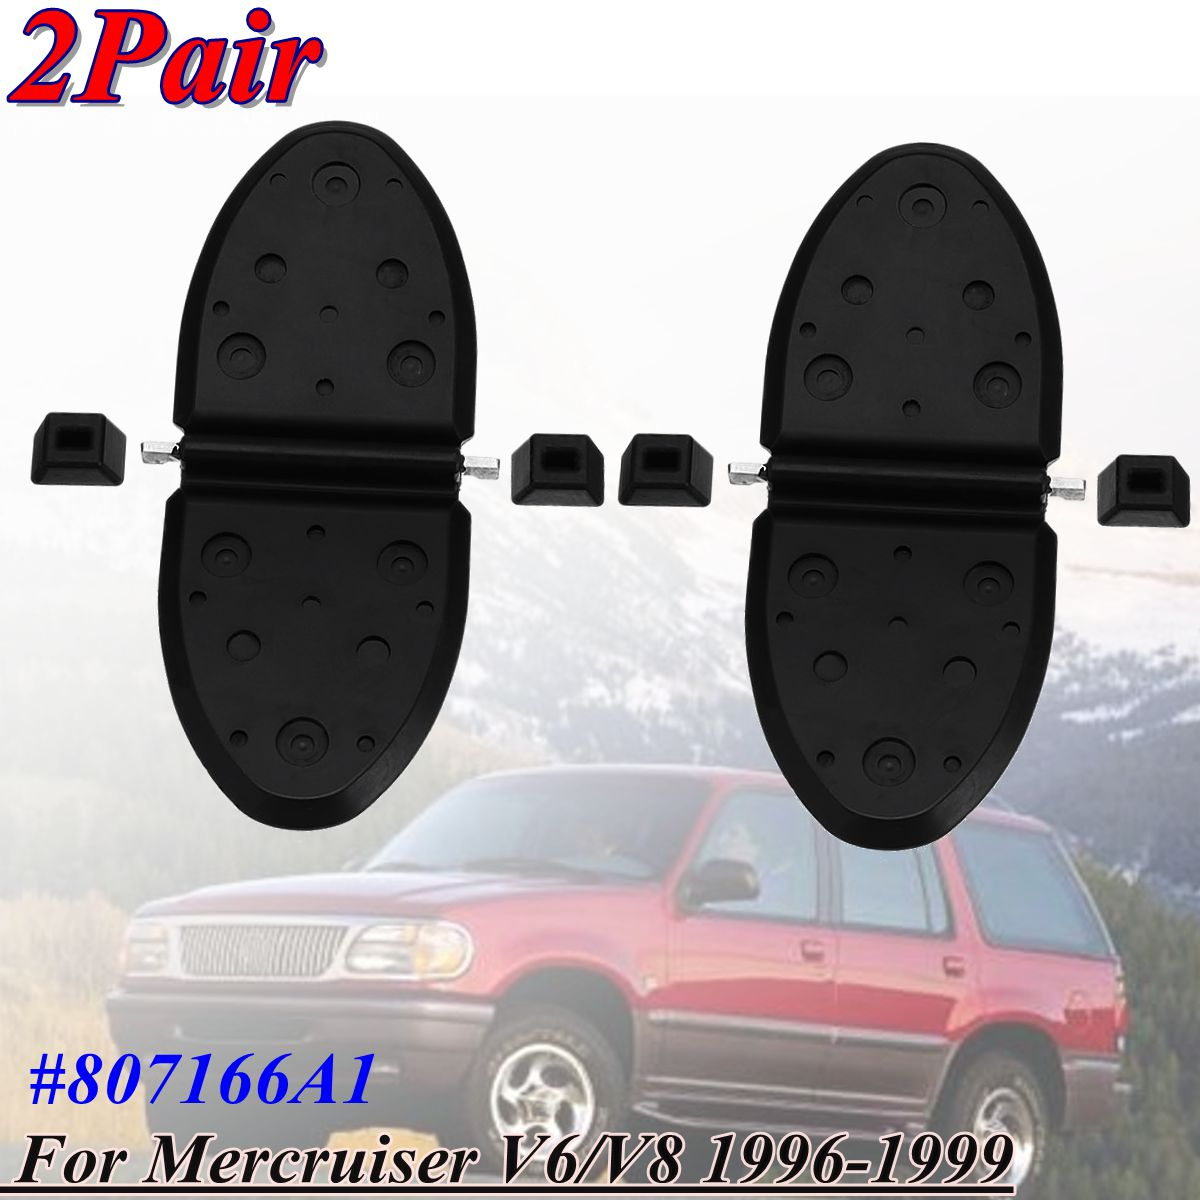 2pcs Sets New Exhaust Flappers Water Shutters Kit For Mercruiser V6 V8 1996 1999 807166a1